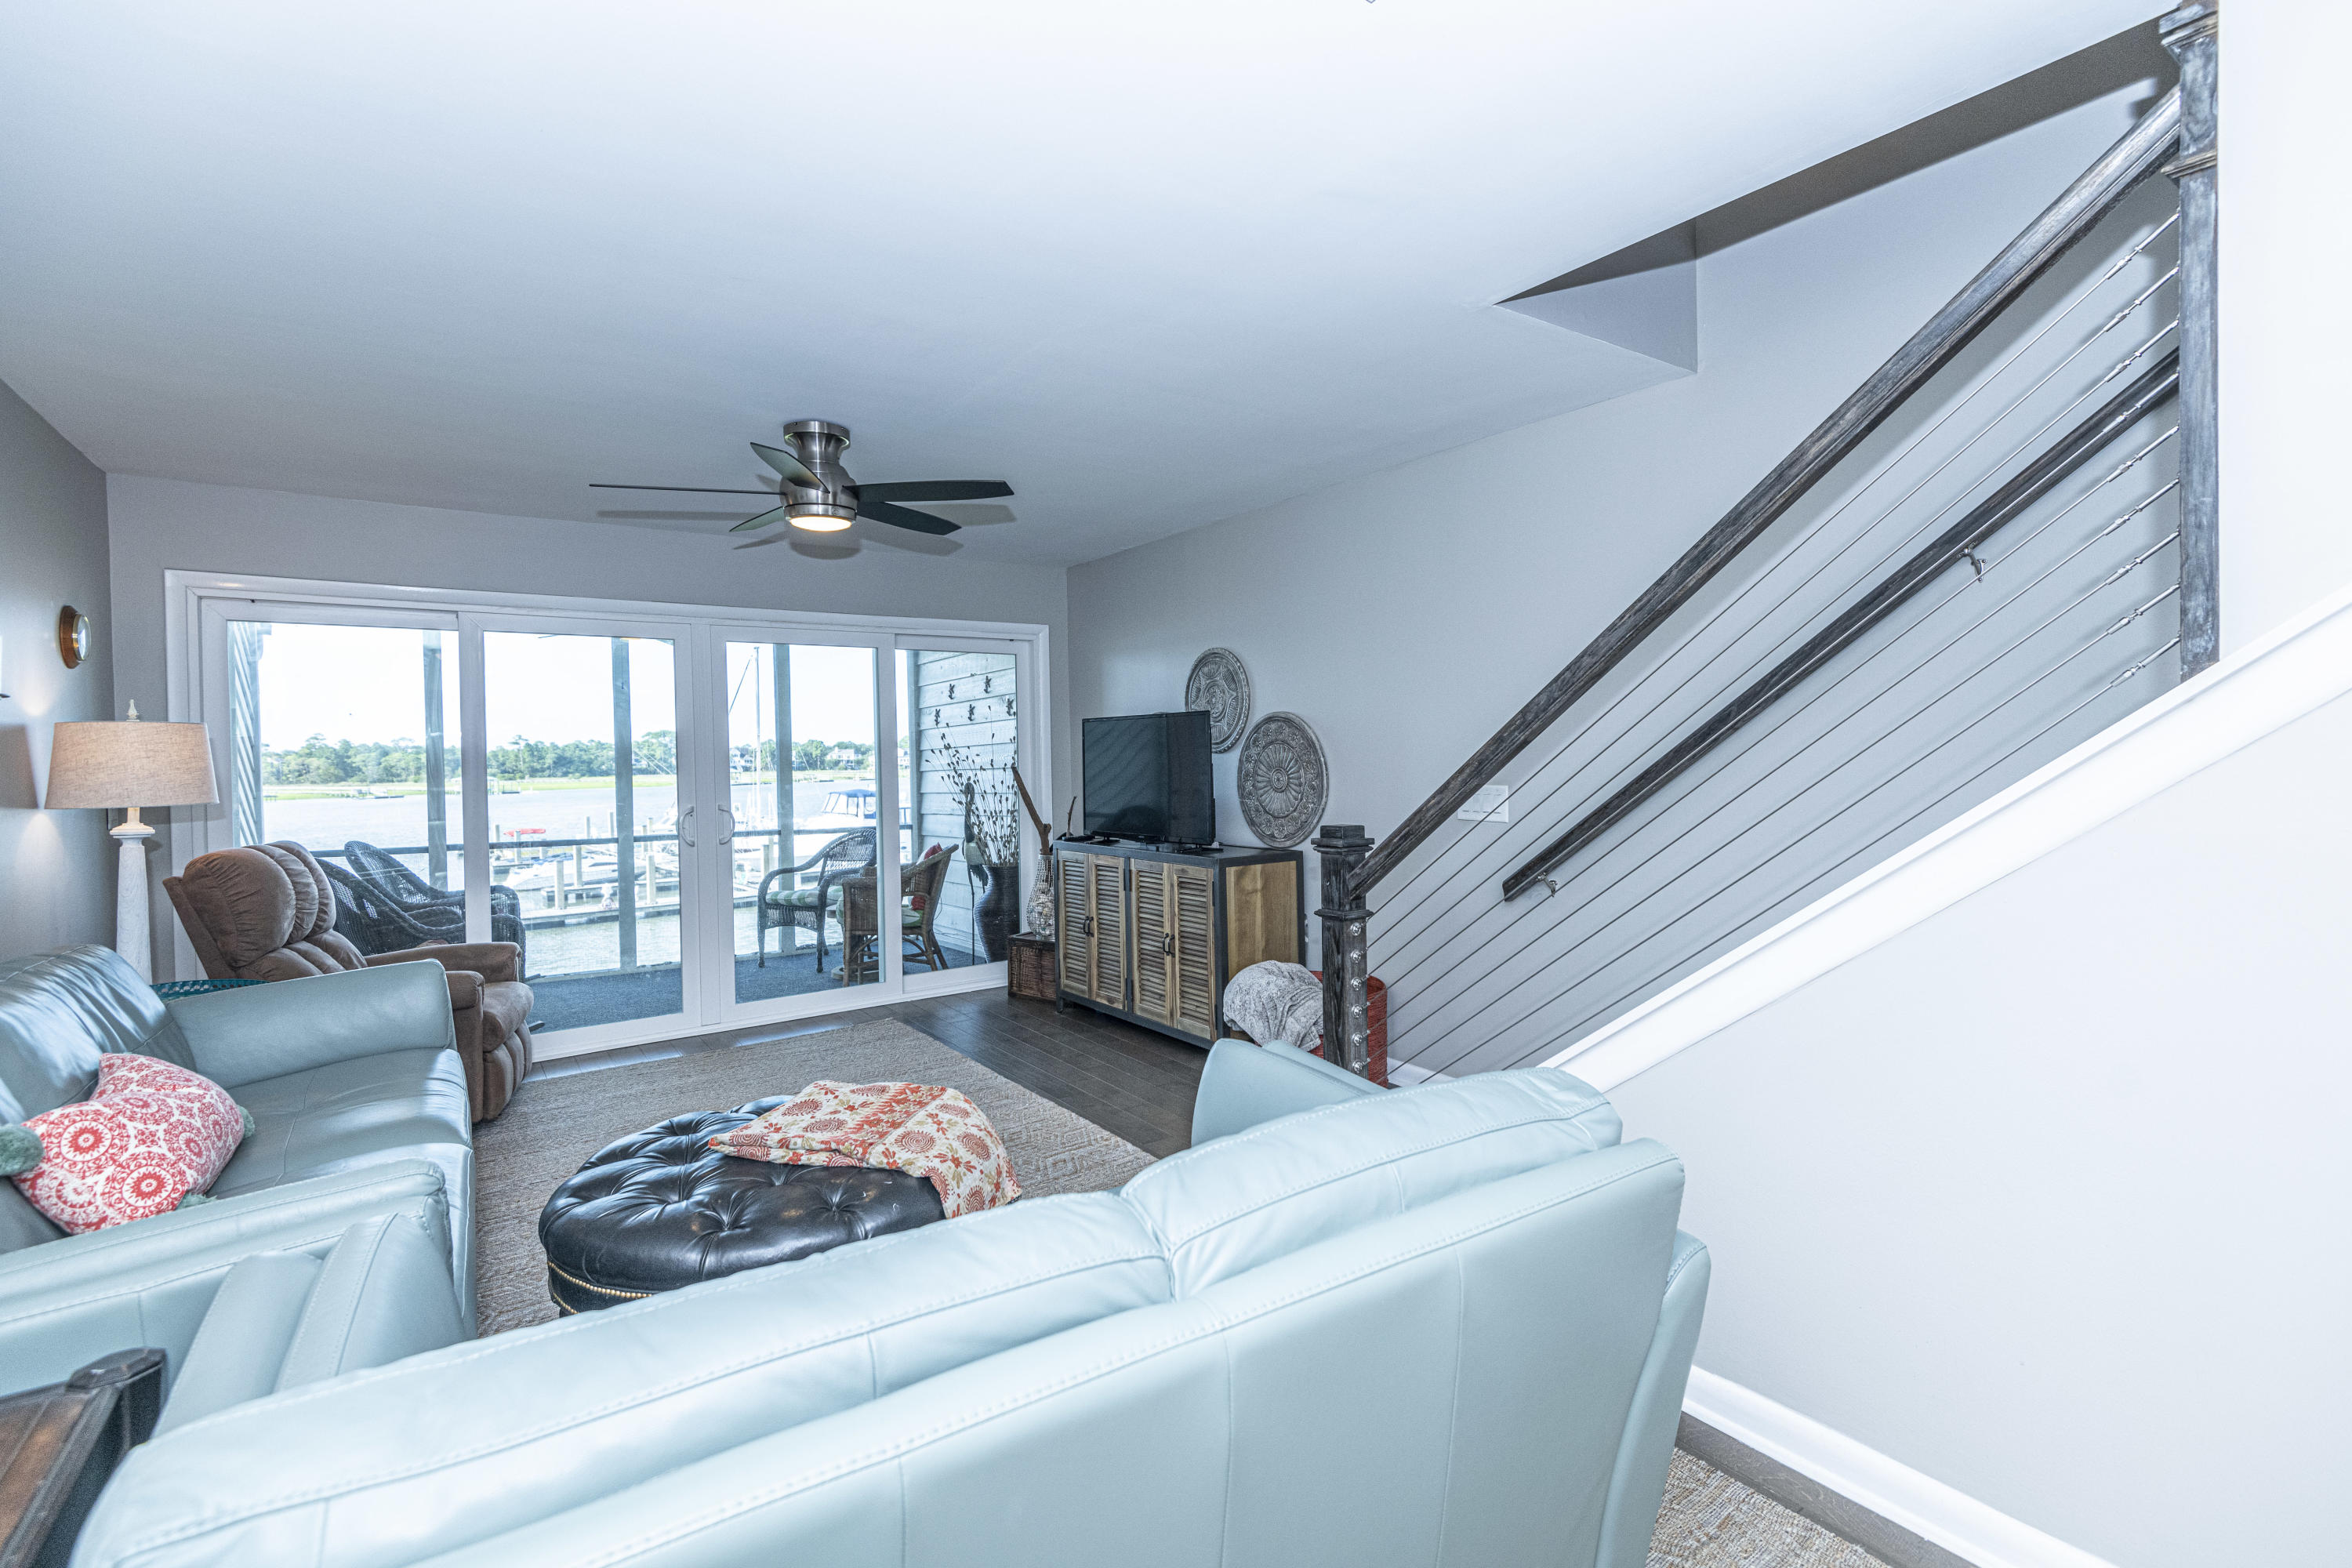 Mariners Cay Homes For Sale - 71 Mariners Cay, Folly Beach, SC - 29